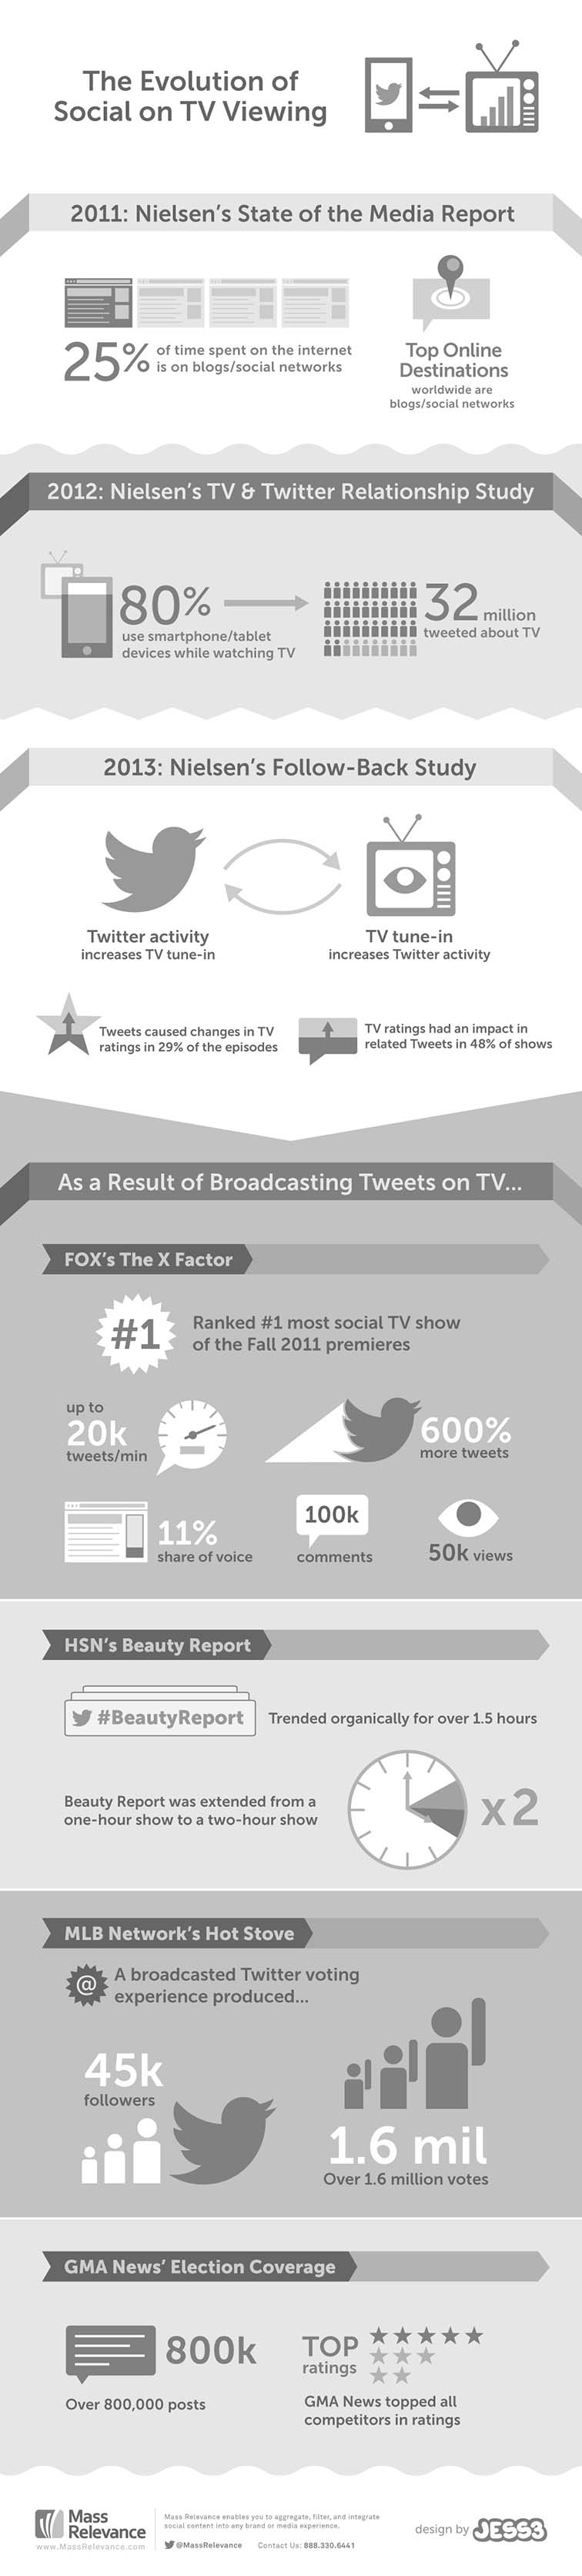 Social Impact on TV Viewing 4369